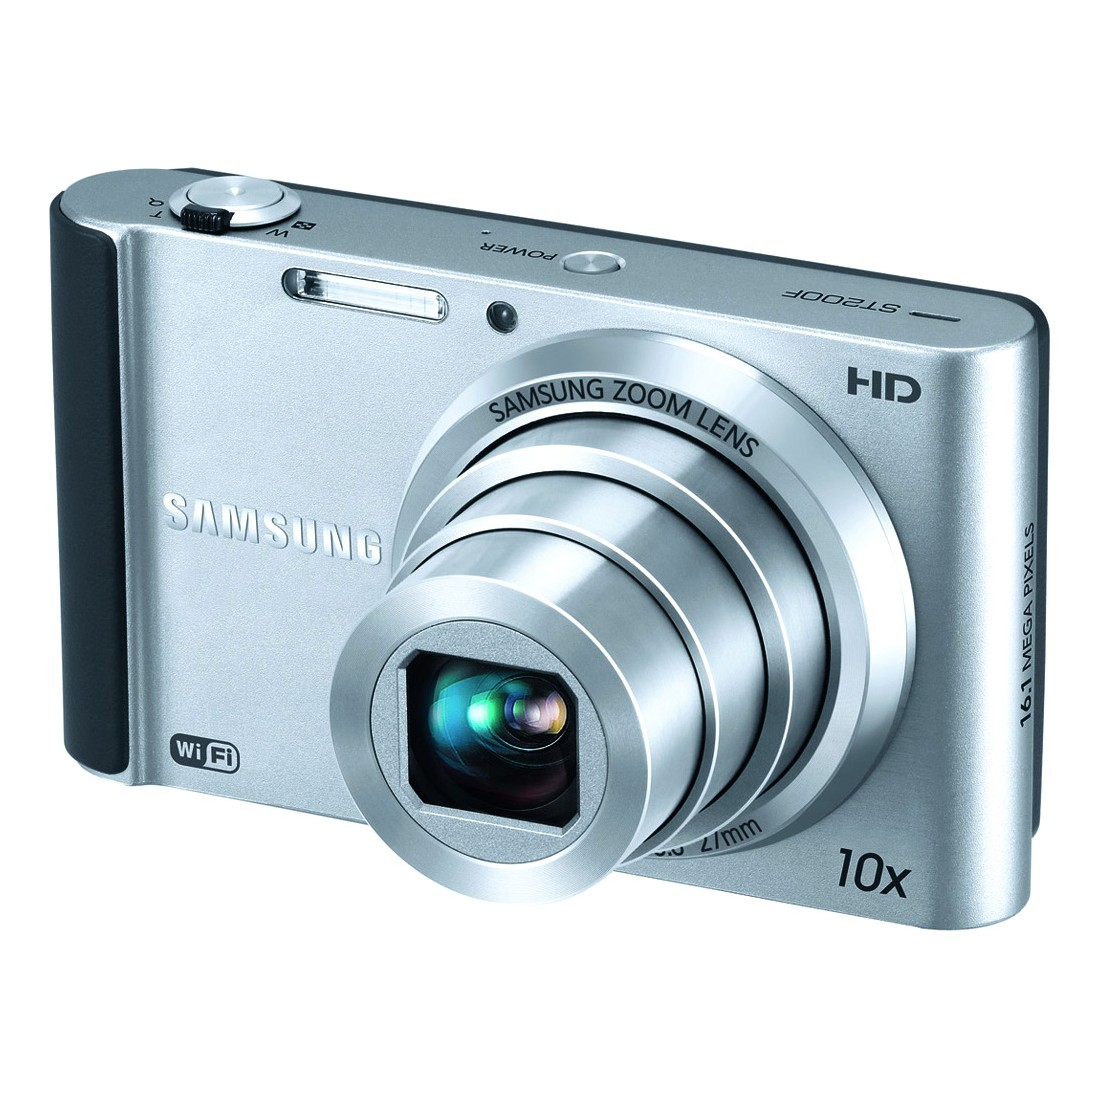 "Samsung ST200F Silver 16MP 10x Ultra-Zoom SMART Digital Camera, 3.0"" LCD Display, WiFi Connectivity"